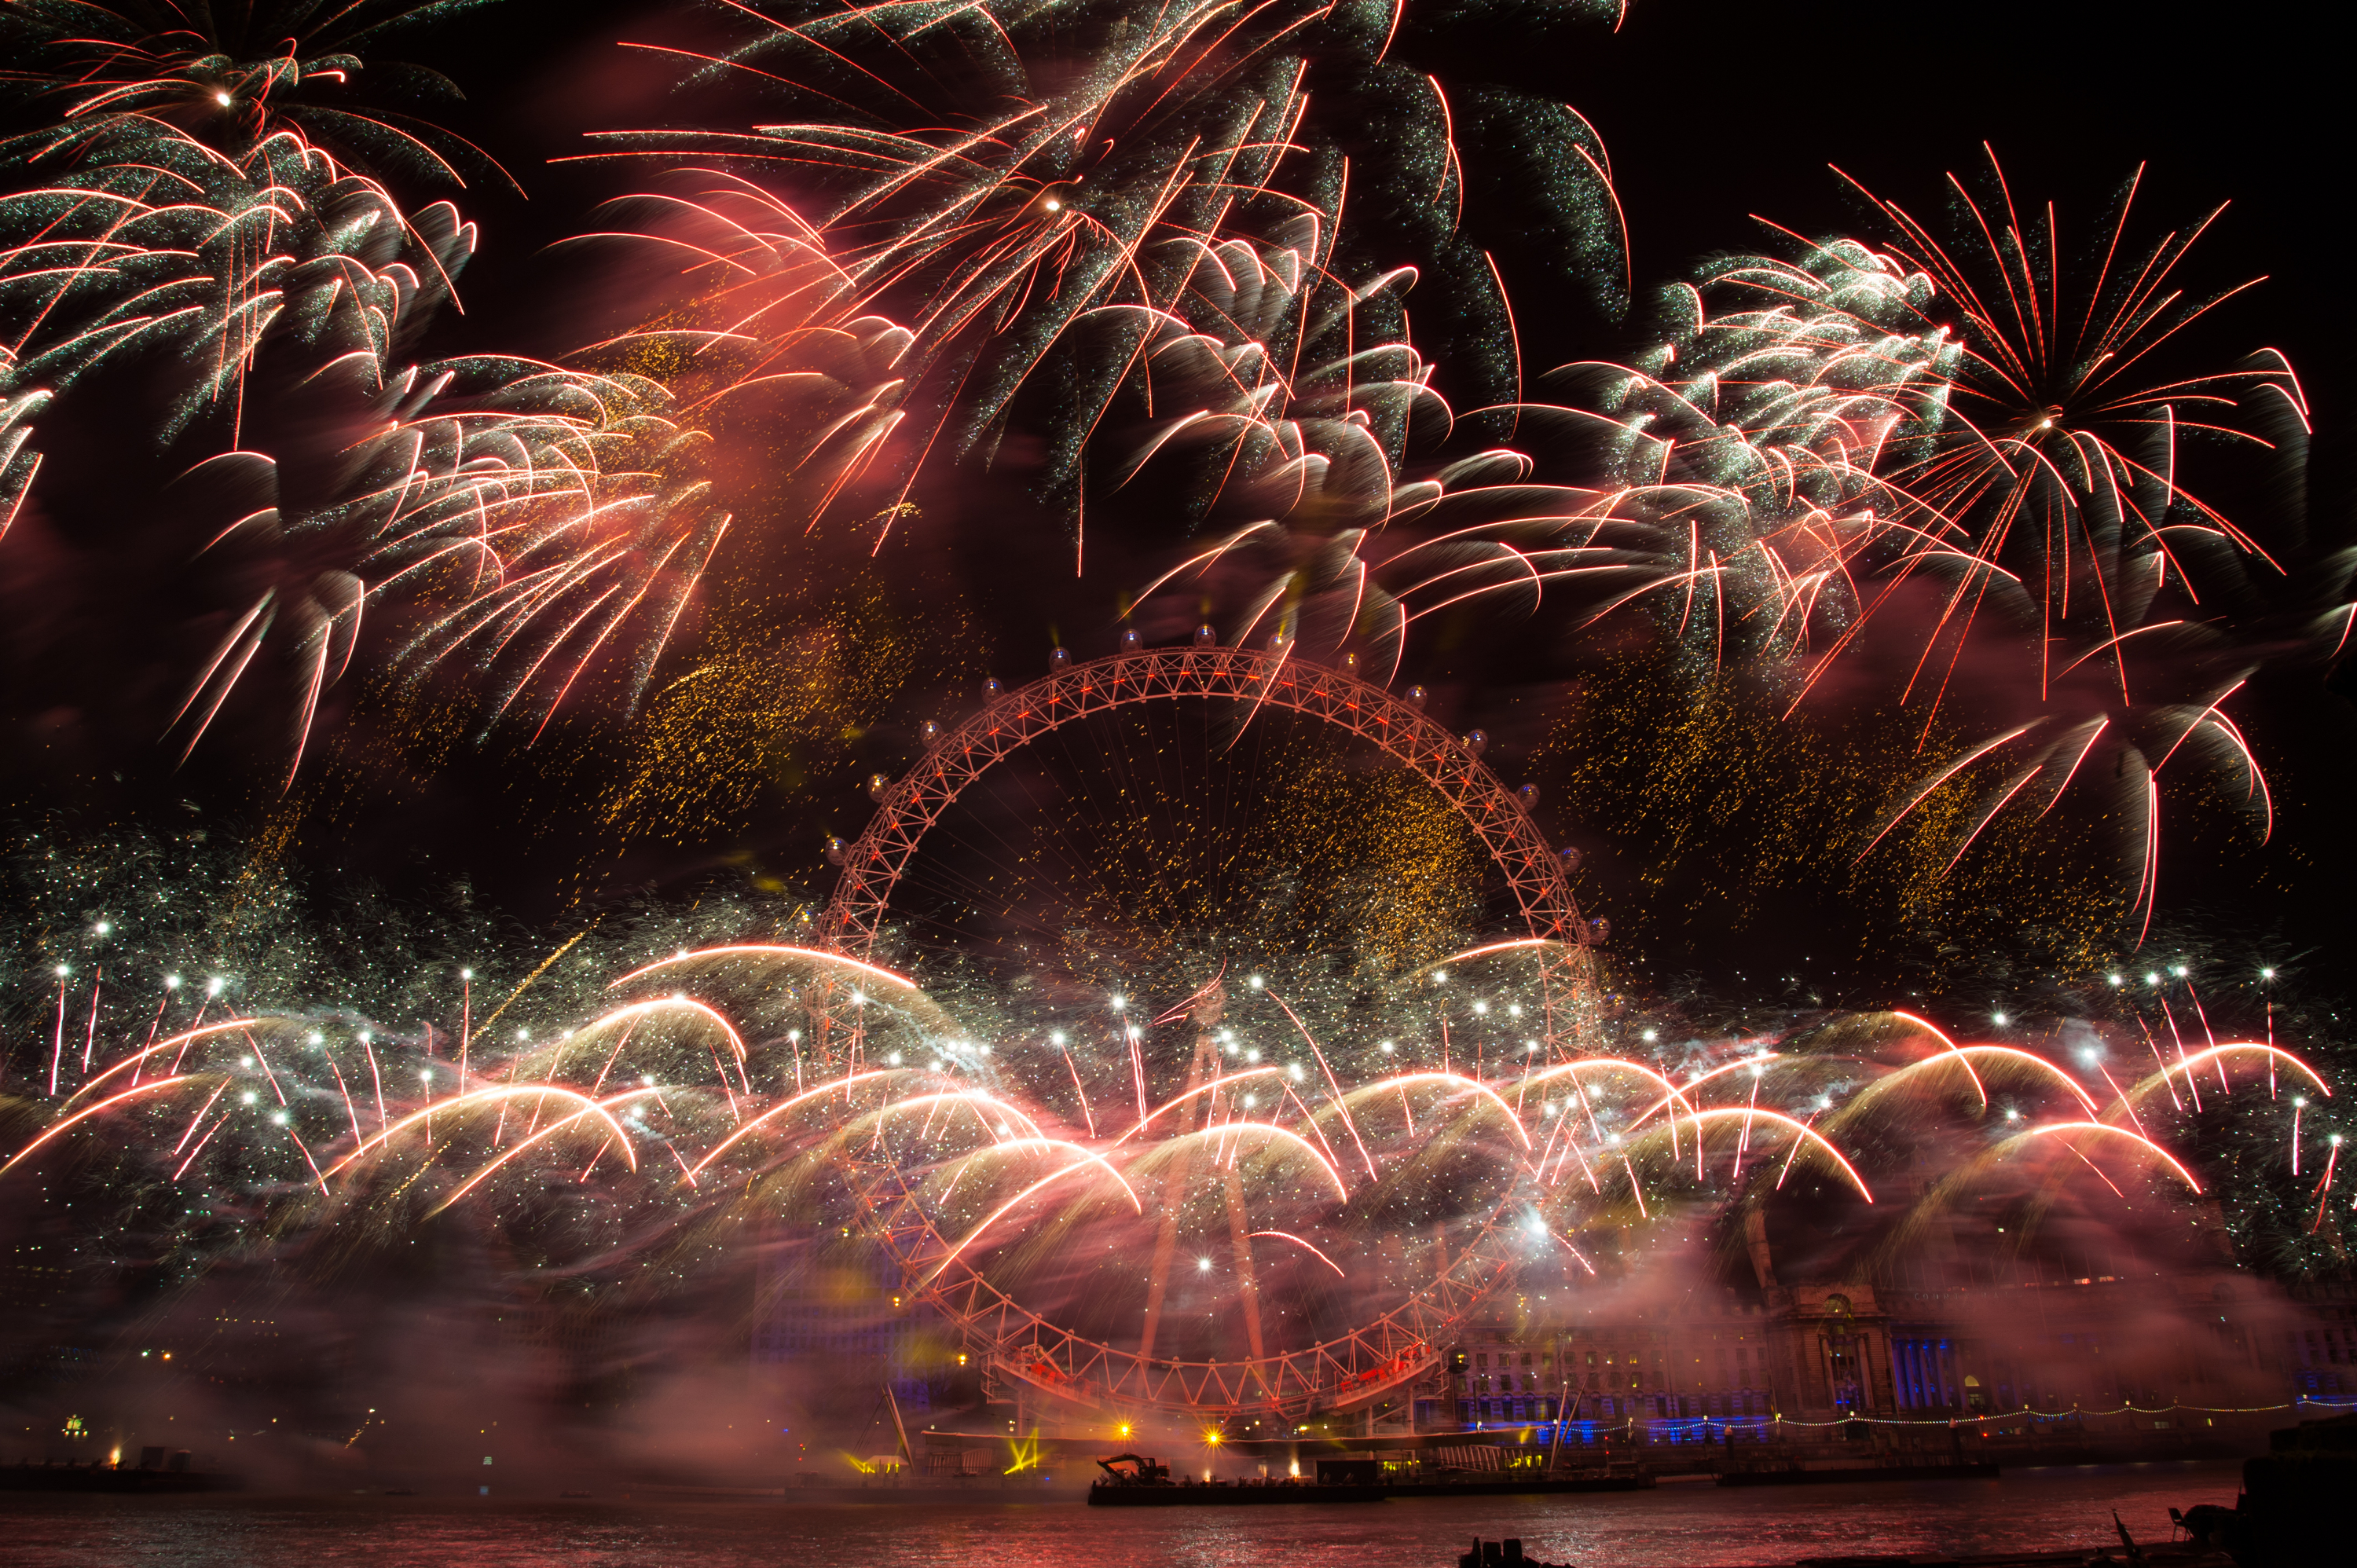 Pictures: New Year's Eve 2015 – The world welcomes 2015 with spectacular fireworks